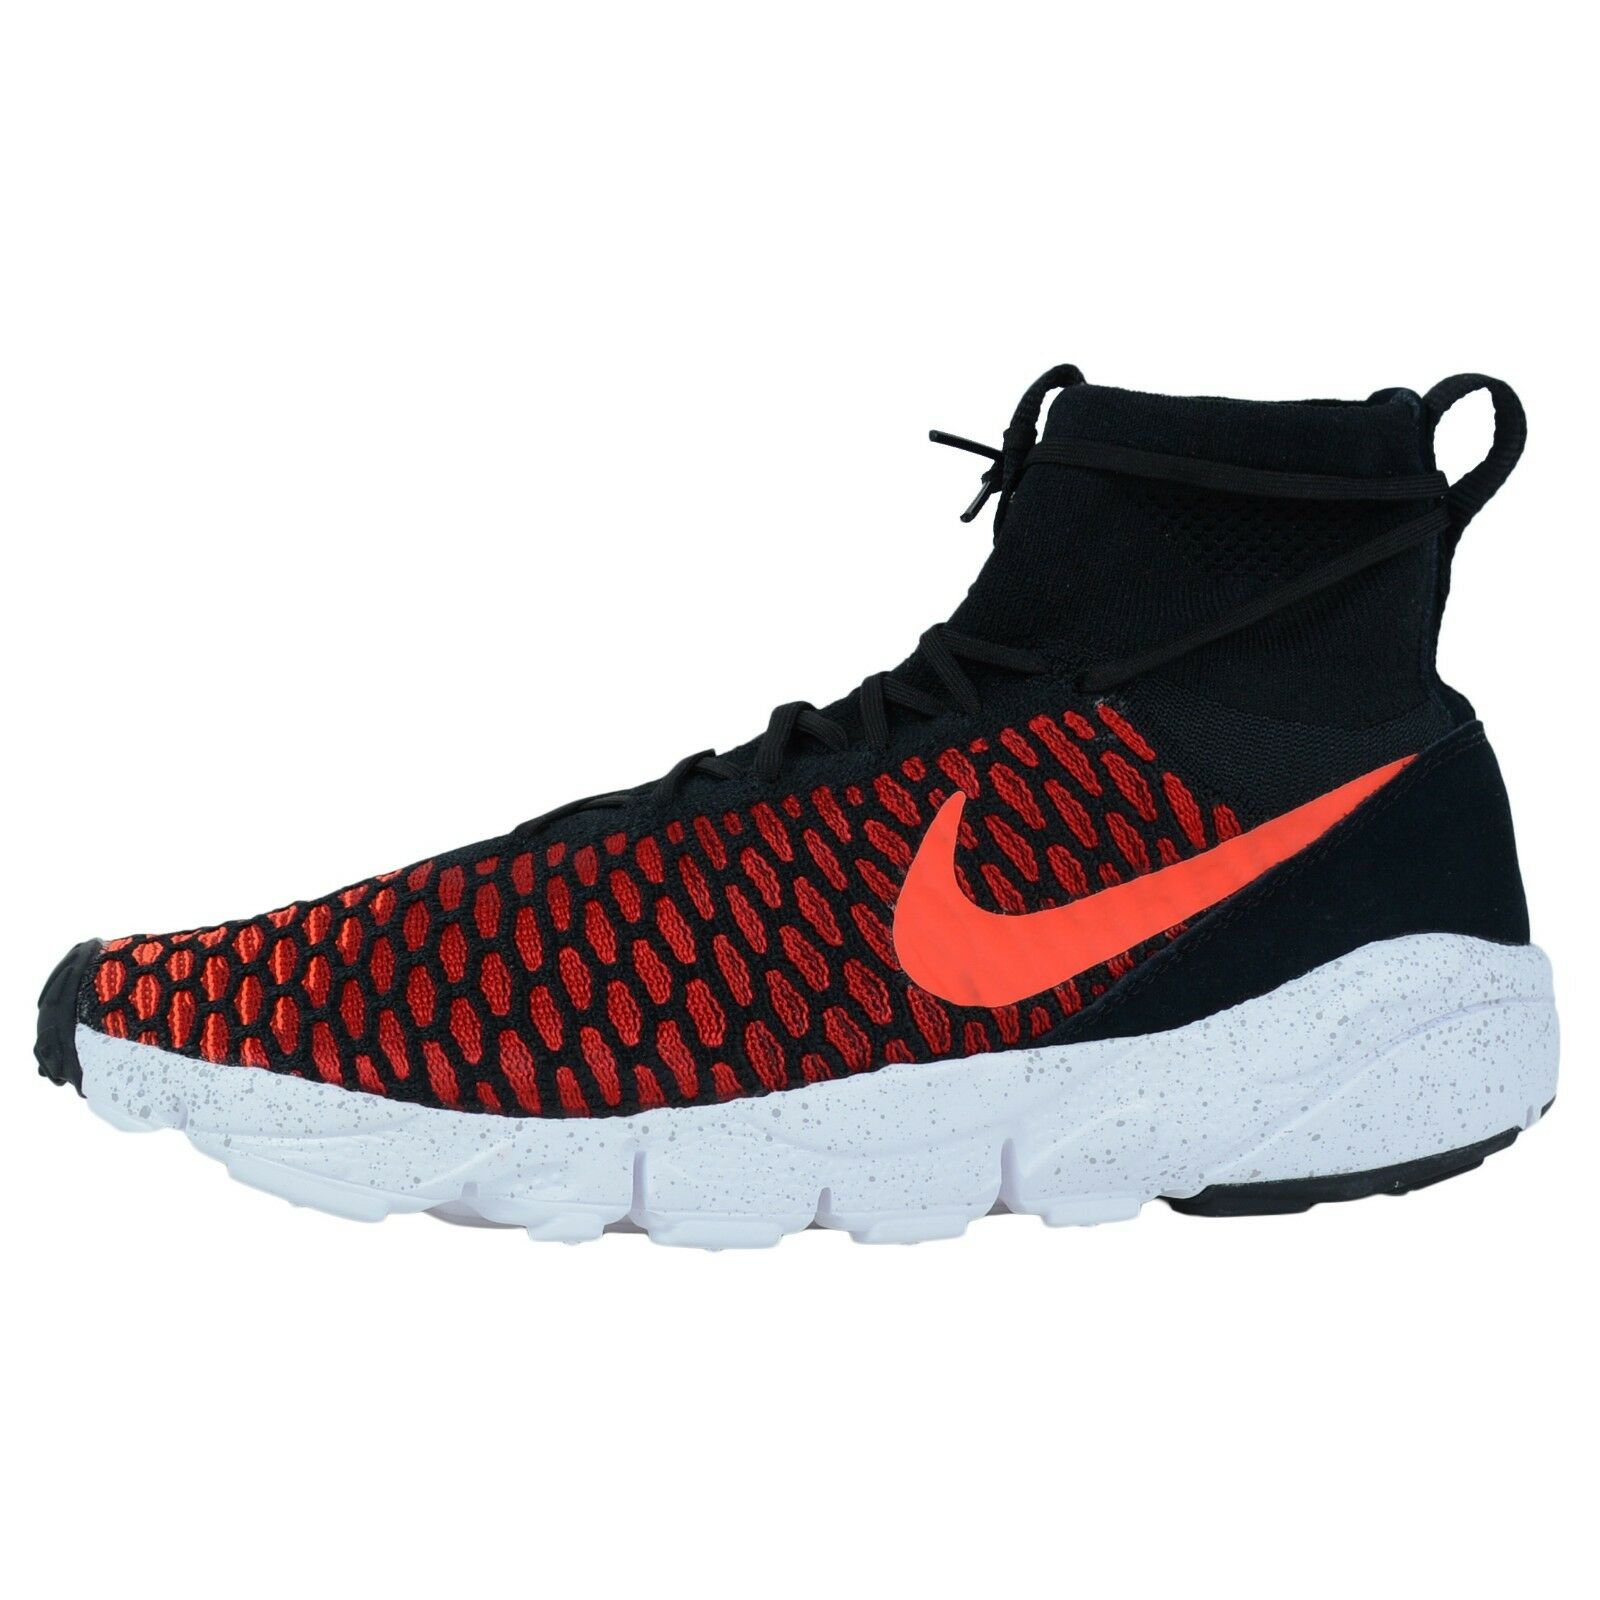 Nike air footscape magista flyknit turnschuhe karmesinrot schwarz helle karmesinrot turnschuhe 816560 002 2fdba9